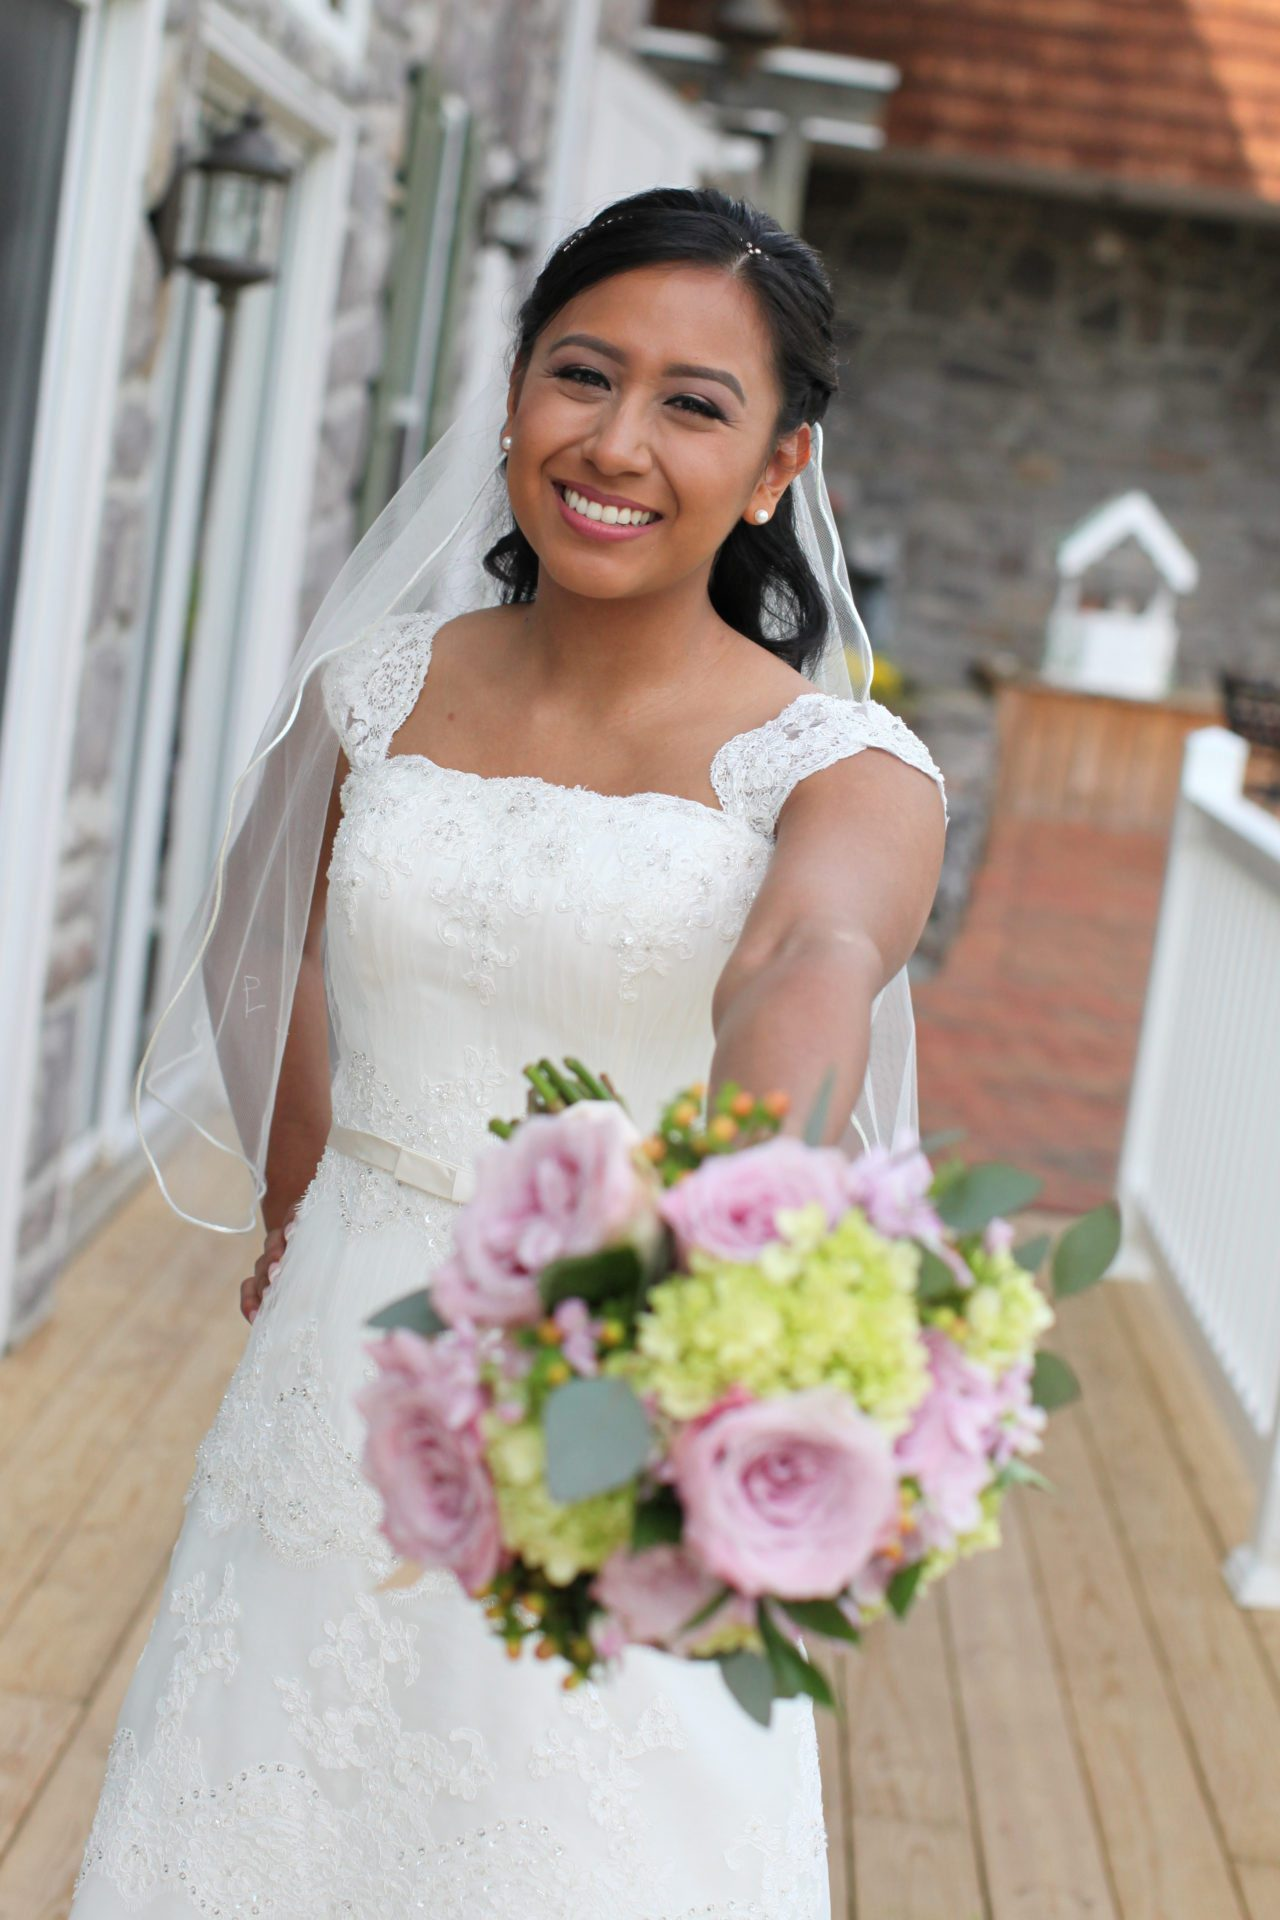 Bride poses with bouquet on back deck at Morningside Inn